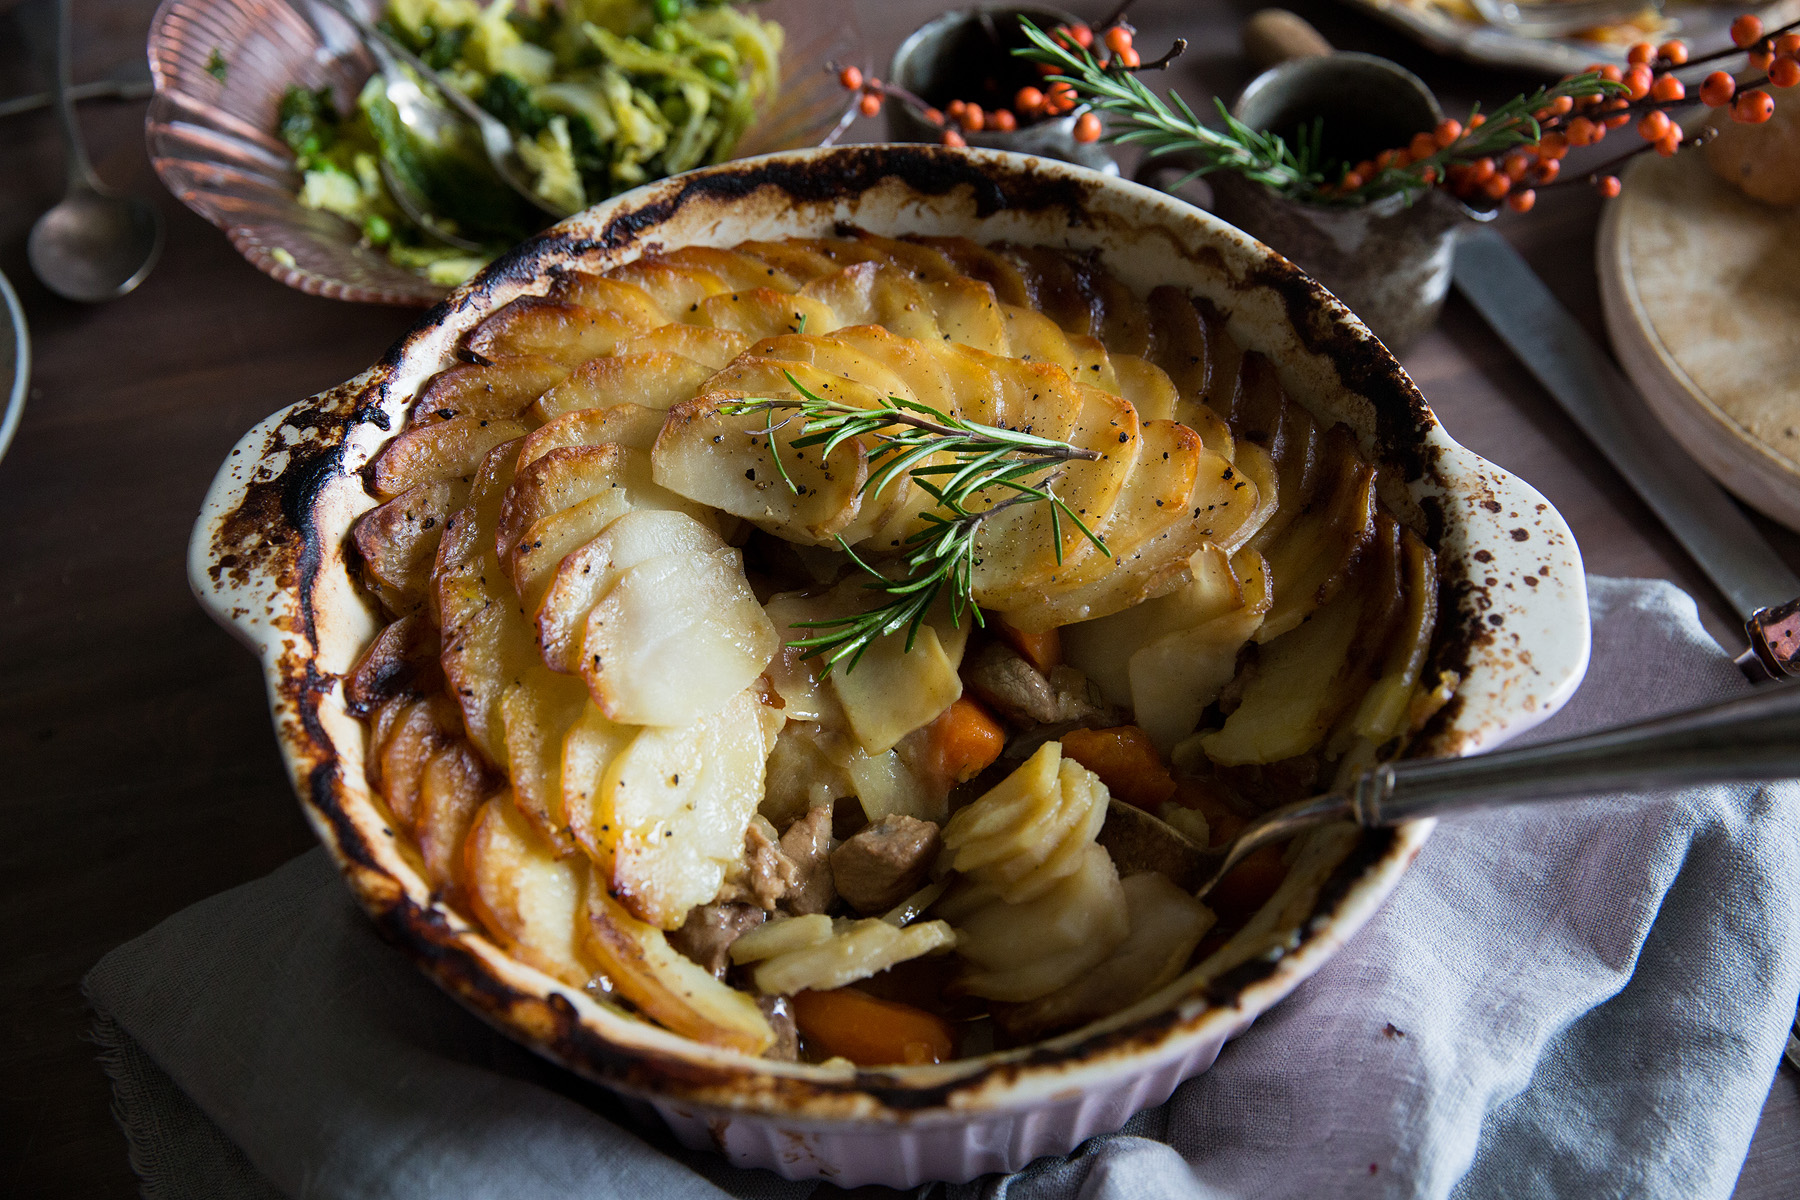 Lamb hotpot  A hearty casserole that deserves its place as a classic  Serves 6–8 2 tbsp plain flour 900g diced lamb 2 tbsp vegetable oil 2 large onions, sliced 1 large garlic bulb, cloves peeled and left whole 8 small shallots, peeled 500g Chantenay carrots, scrubbed 1 tbsp Dijon mustard 1 tsp chopped fresh rosemary, plus extra to garnish 500ml chicken or vegetable stock 750g Maris Piper potatoes, unpeeled, scrubbed and cut into 5mm slices 40g butter, melted  1 Tip the flour into a bowl, and season with a few pinches of sea salt and a good grinding of black pepper. Add the lamb and toss to coat in the flour. Heat half the oil in a large ovenproof casserole dish and add the lamb (you may need to do this in two batches). Cook for 5–6 mins, until brown all over, then transfer to a plate with a slotted spoon and set aside. 2 Add the remaining oil to the same casserole dish and gently fry the onions for around 5 mins, until translucent. Add the garlic cloves and cook for a further minute before adding the shallots and carrots. Cook, stirring, for a further 2–3 mins. 3 Return the lamb to the casserole dish, and add the mustard and chopped rosemary. Season and stir well, before stirring through the stock. 4 Preheat oven to 180C/Fan 160C/ 350F. Arrange the potato slices on top of the lamb, overlapping slightly to create a lid for the hotpot. Brush with the melted butter, season with salt and black pepper, and cover with a lid or foil. Bake for 11⁄2 hours. 5 Remove the lid or foil, turn up the oven to 200C/Fan 180C/400F, and cook for a further 30–40 mins, or until the potatoes are golden brown. Garnish with rosemary sprigs.  This recipe was created for  The Simple Things  magazine Nov 2017